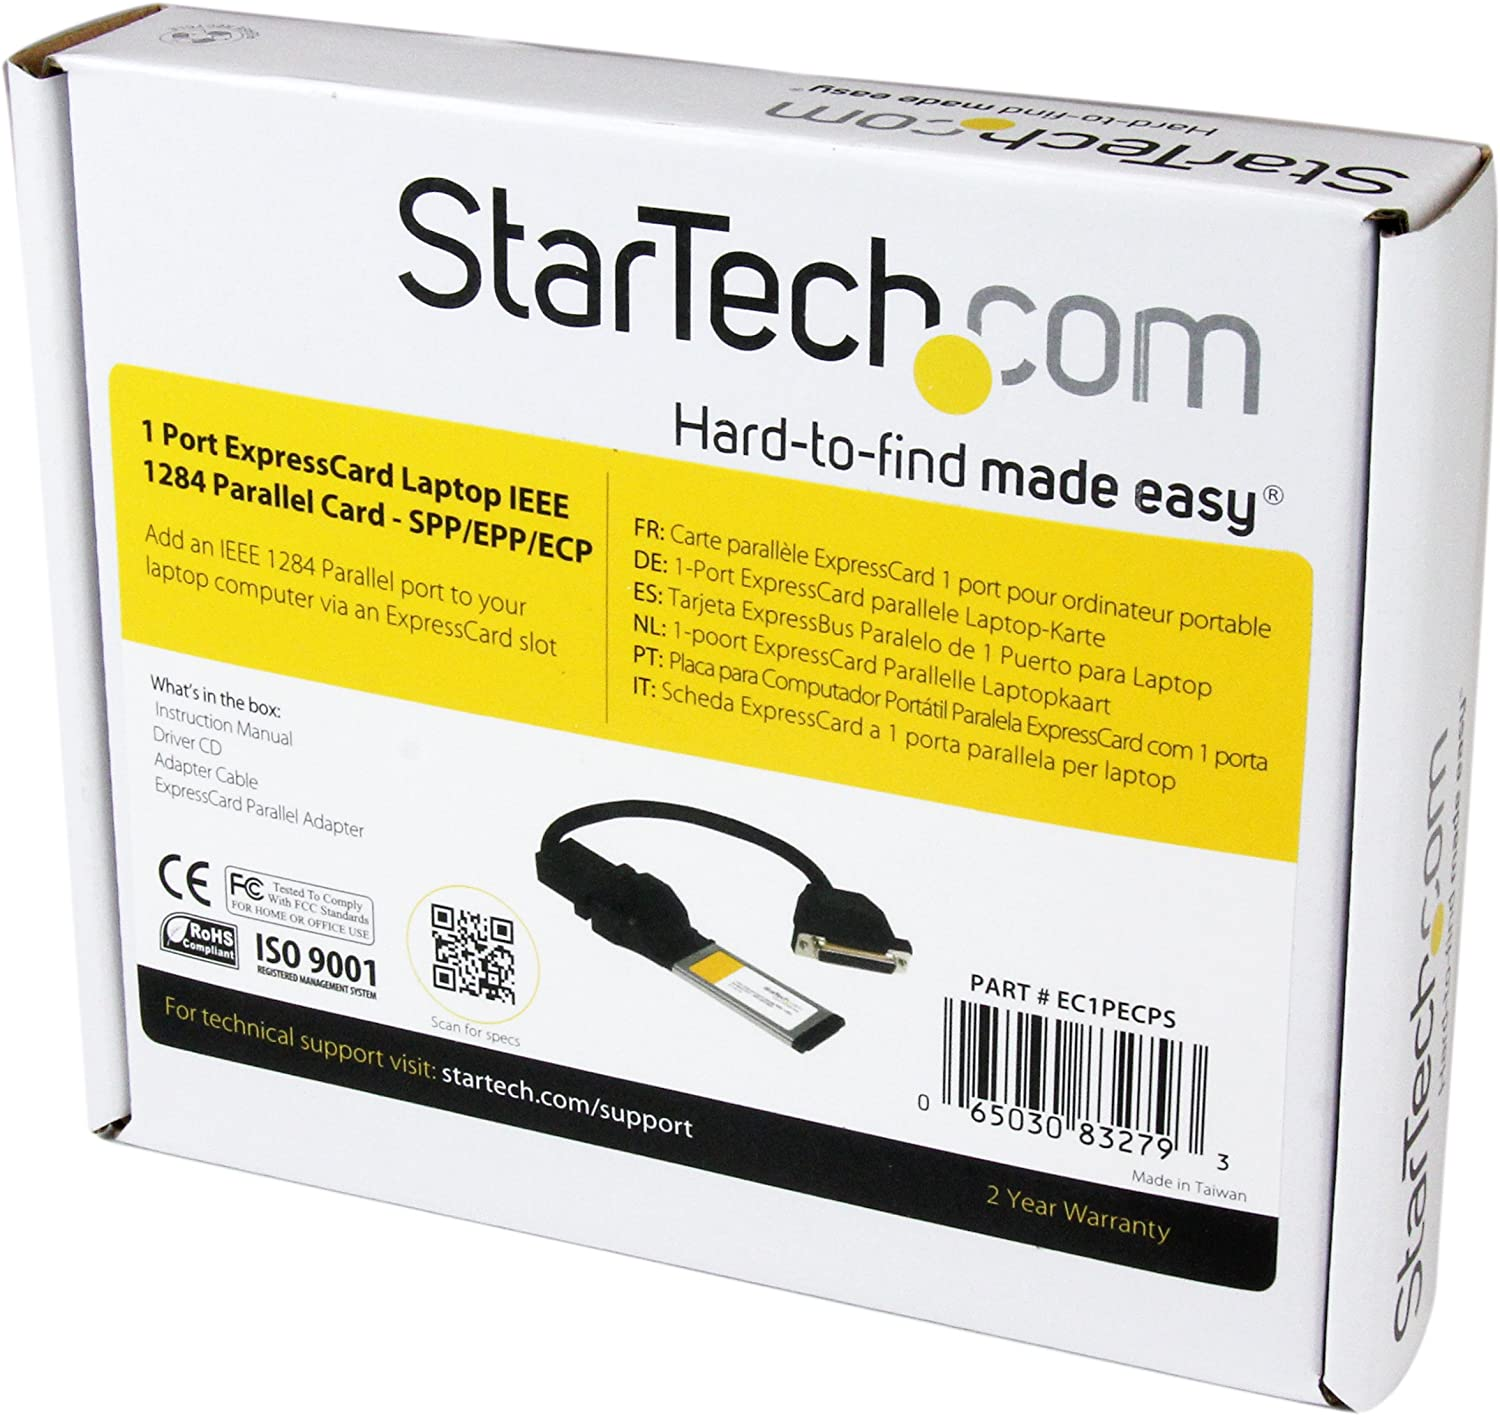 StarTech.com 1 Port ExpressCard Laptop Parallel Adapter Card - SPP/EPP/ECP - ExpressCard 54 Serial Card - Parallel ExpressCard (EC1PECPS)